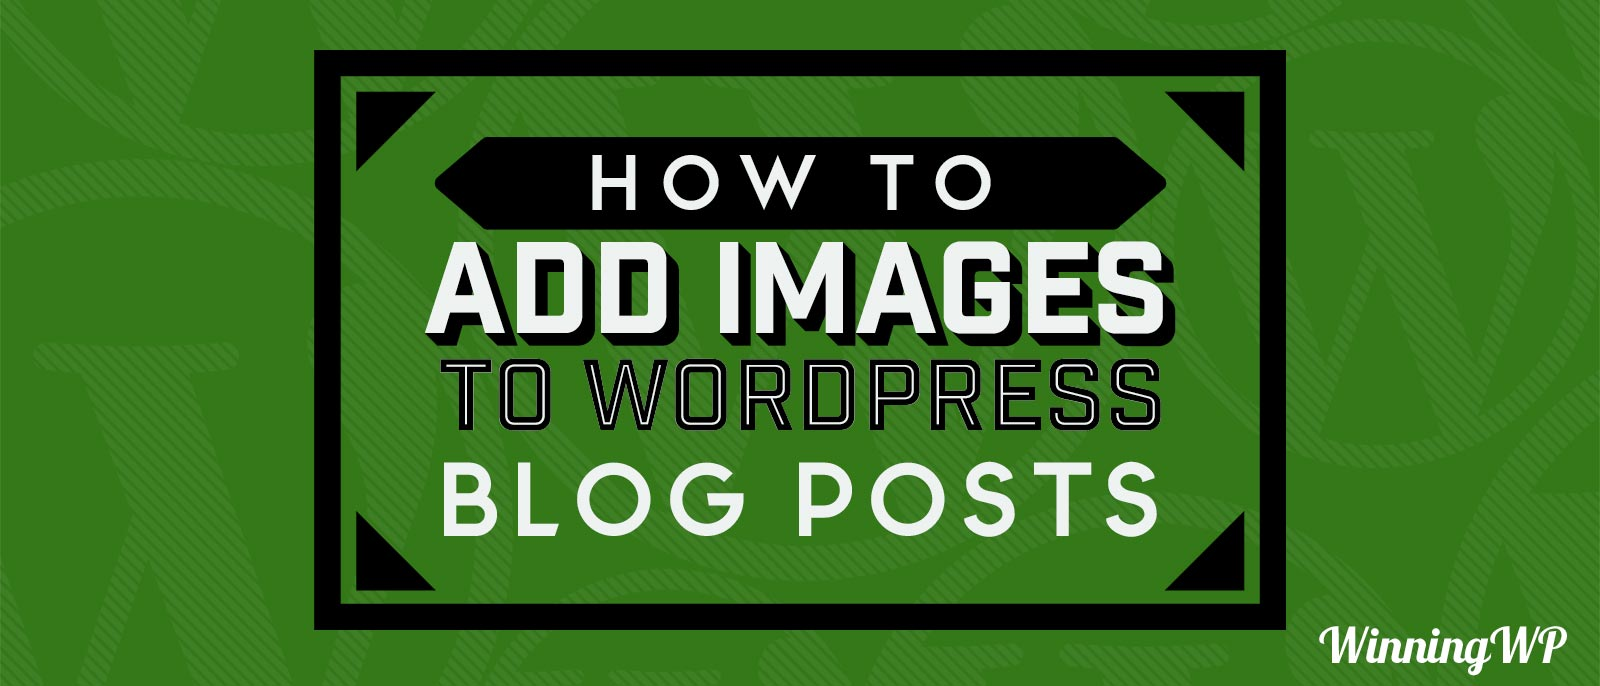 How to Add Images to WordPress Posts and Pages (YouTube Video)